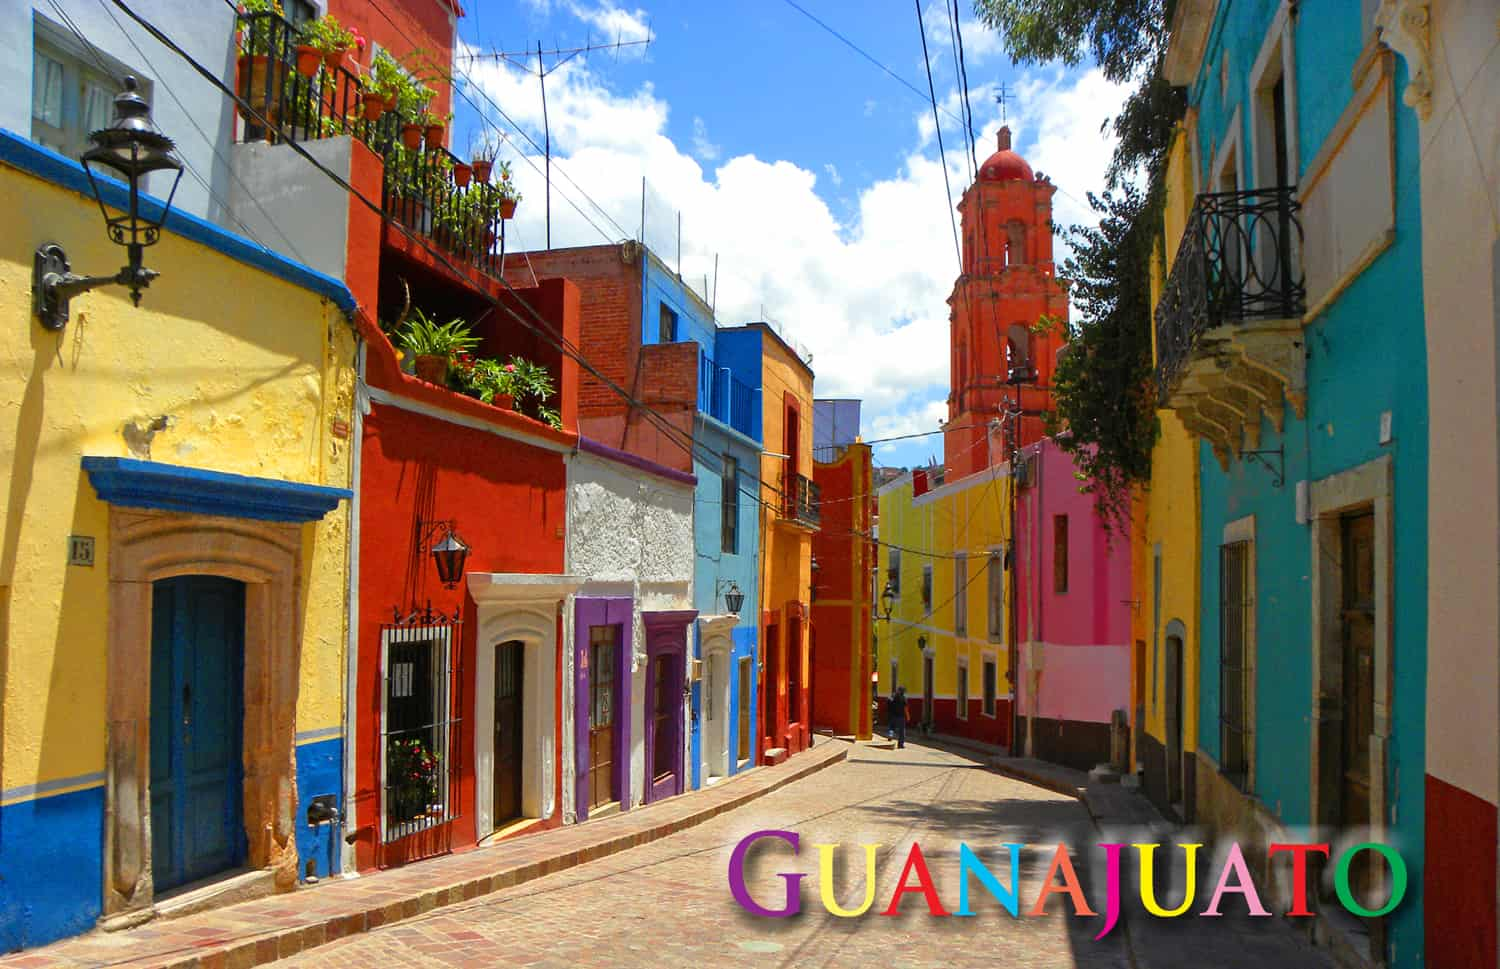 Guanajuato, Mexico – the prettiest town I've ever seen